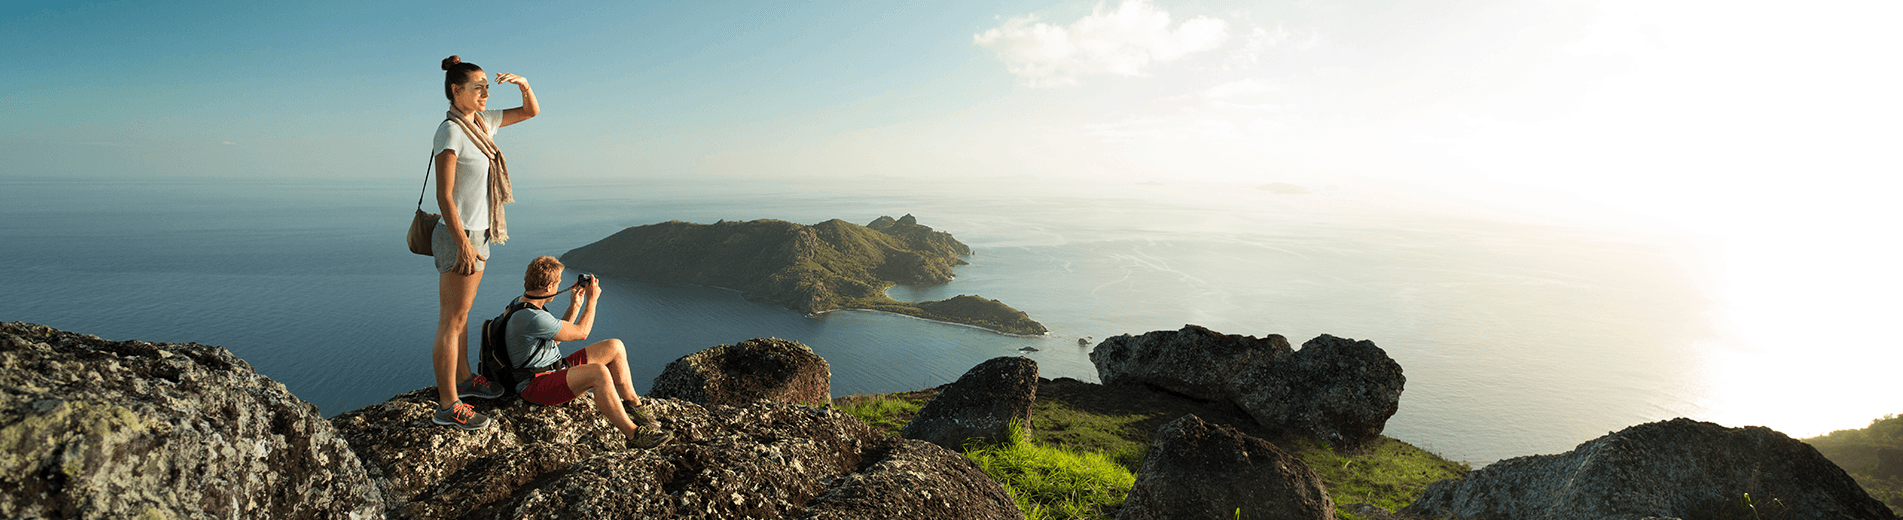 In Fiji, you can take a hike deep into the natural rainforests and find yourself at picturesque mountainous peaks near the coastline.